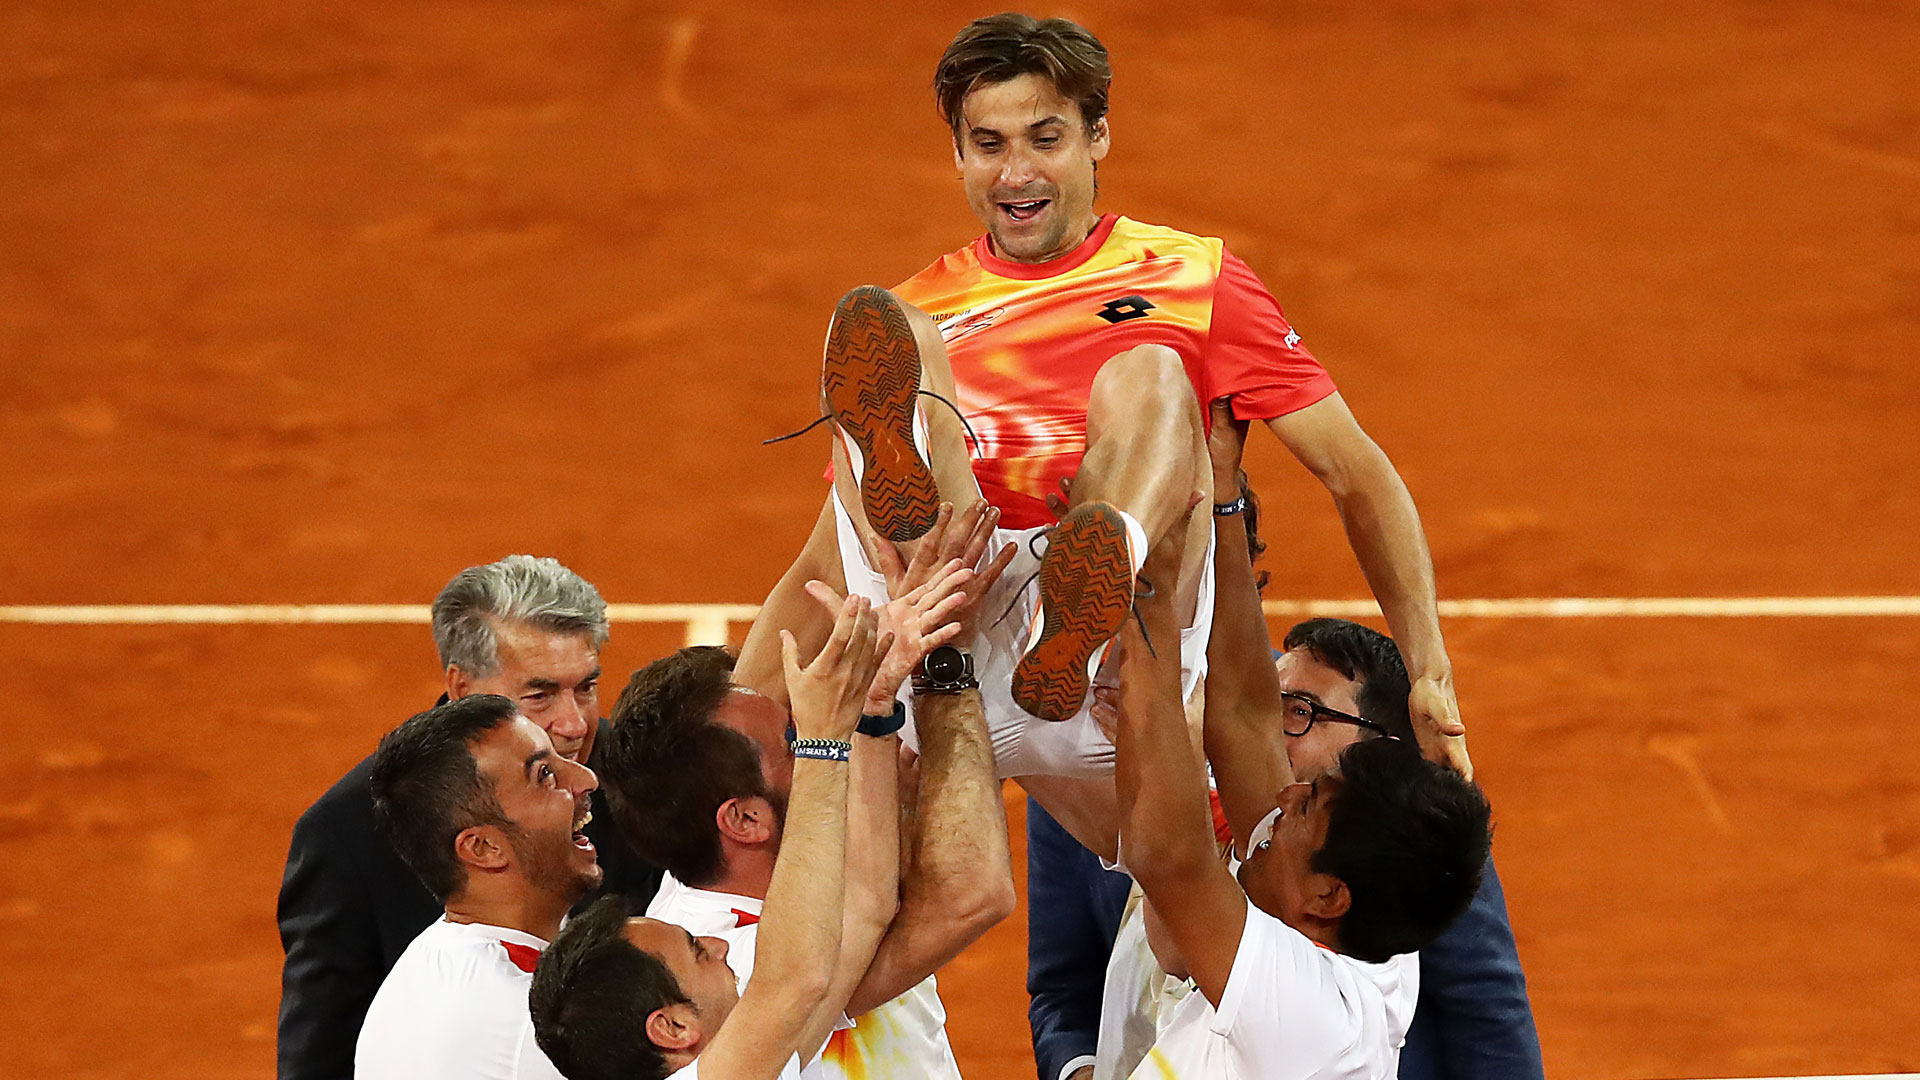 David Ferrer reacts during his retirement ceremony in Madrid.